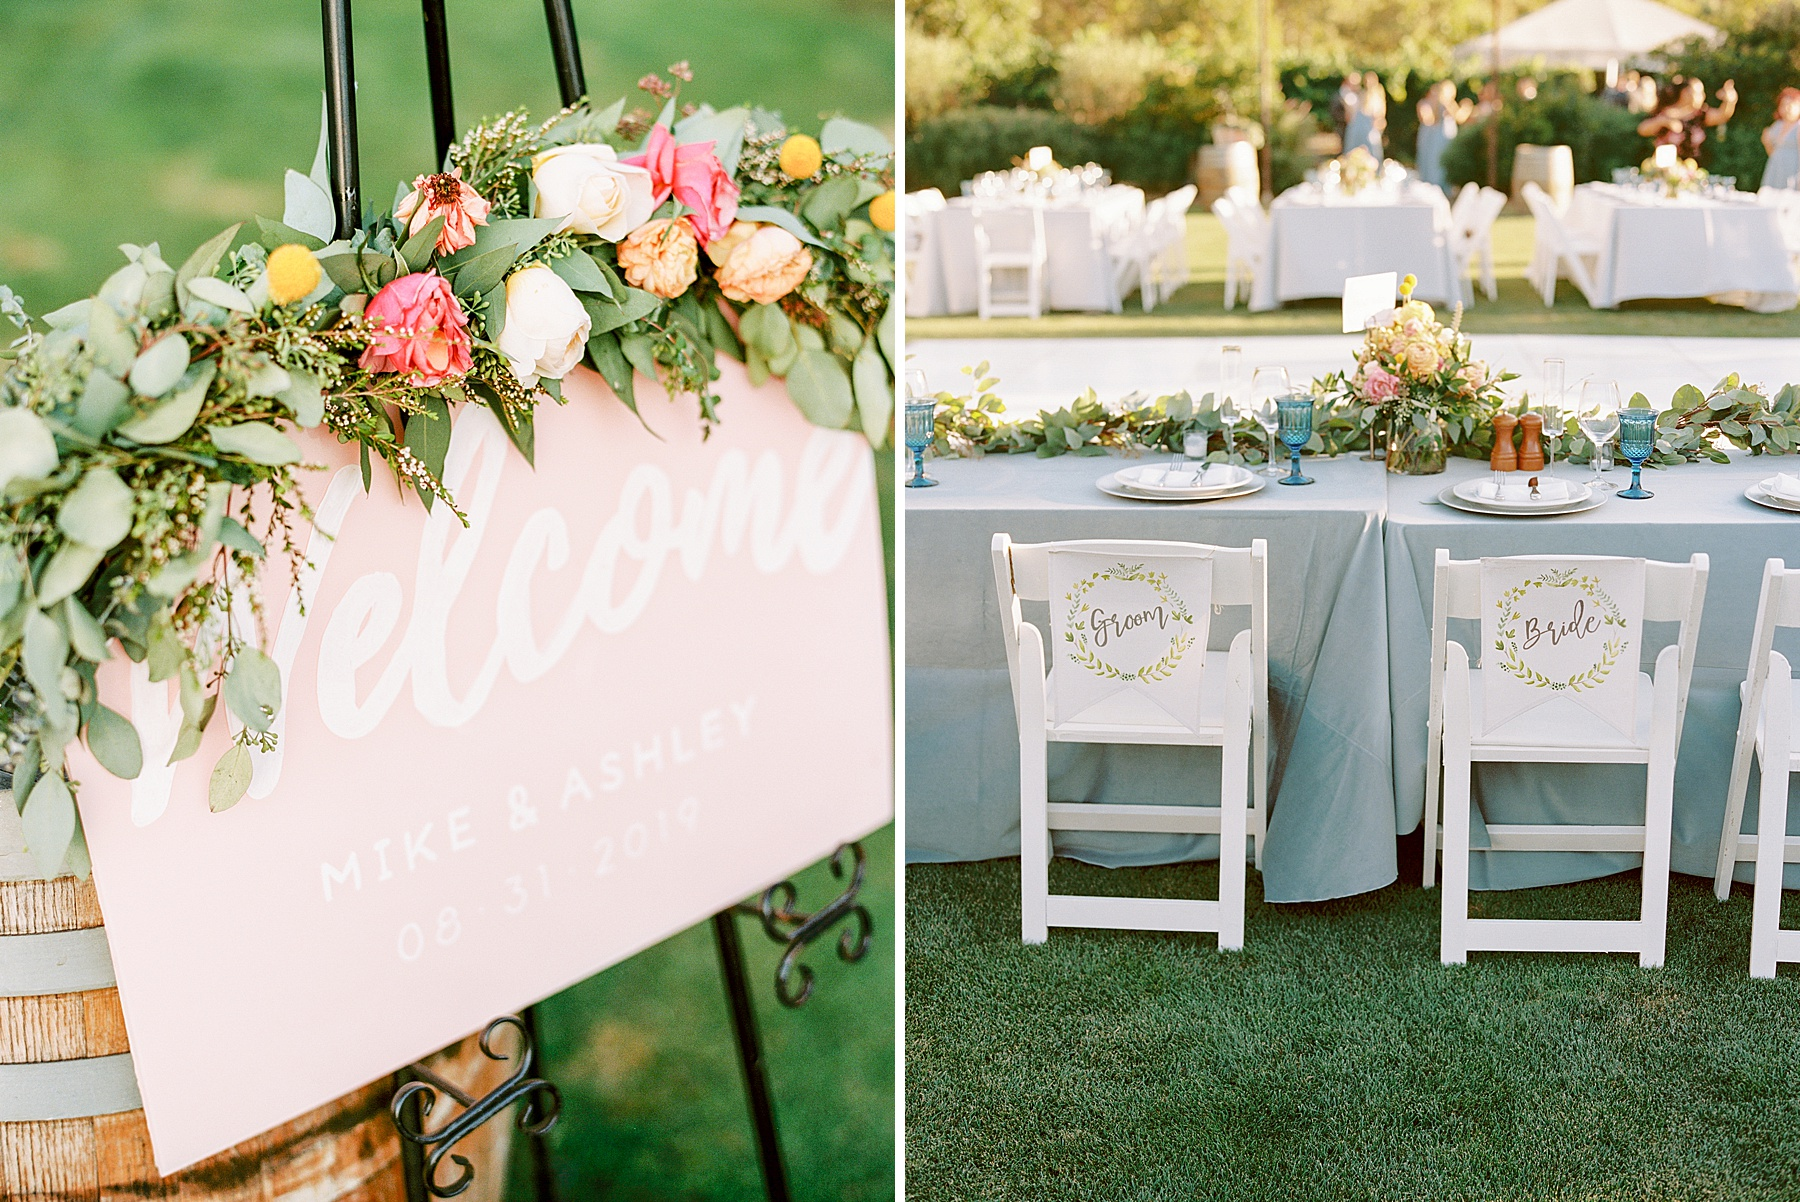 Wente Wedding with A Tropical Color Palette - Ashley & Mike - Featured on Inspired by This - Ashley Baumgartner_0015.jpg